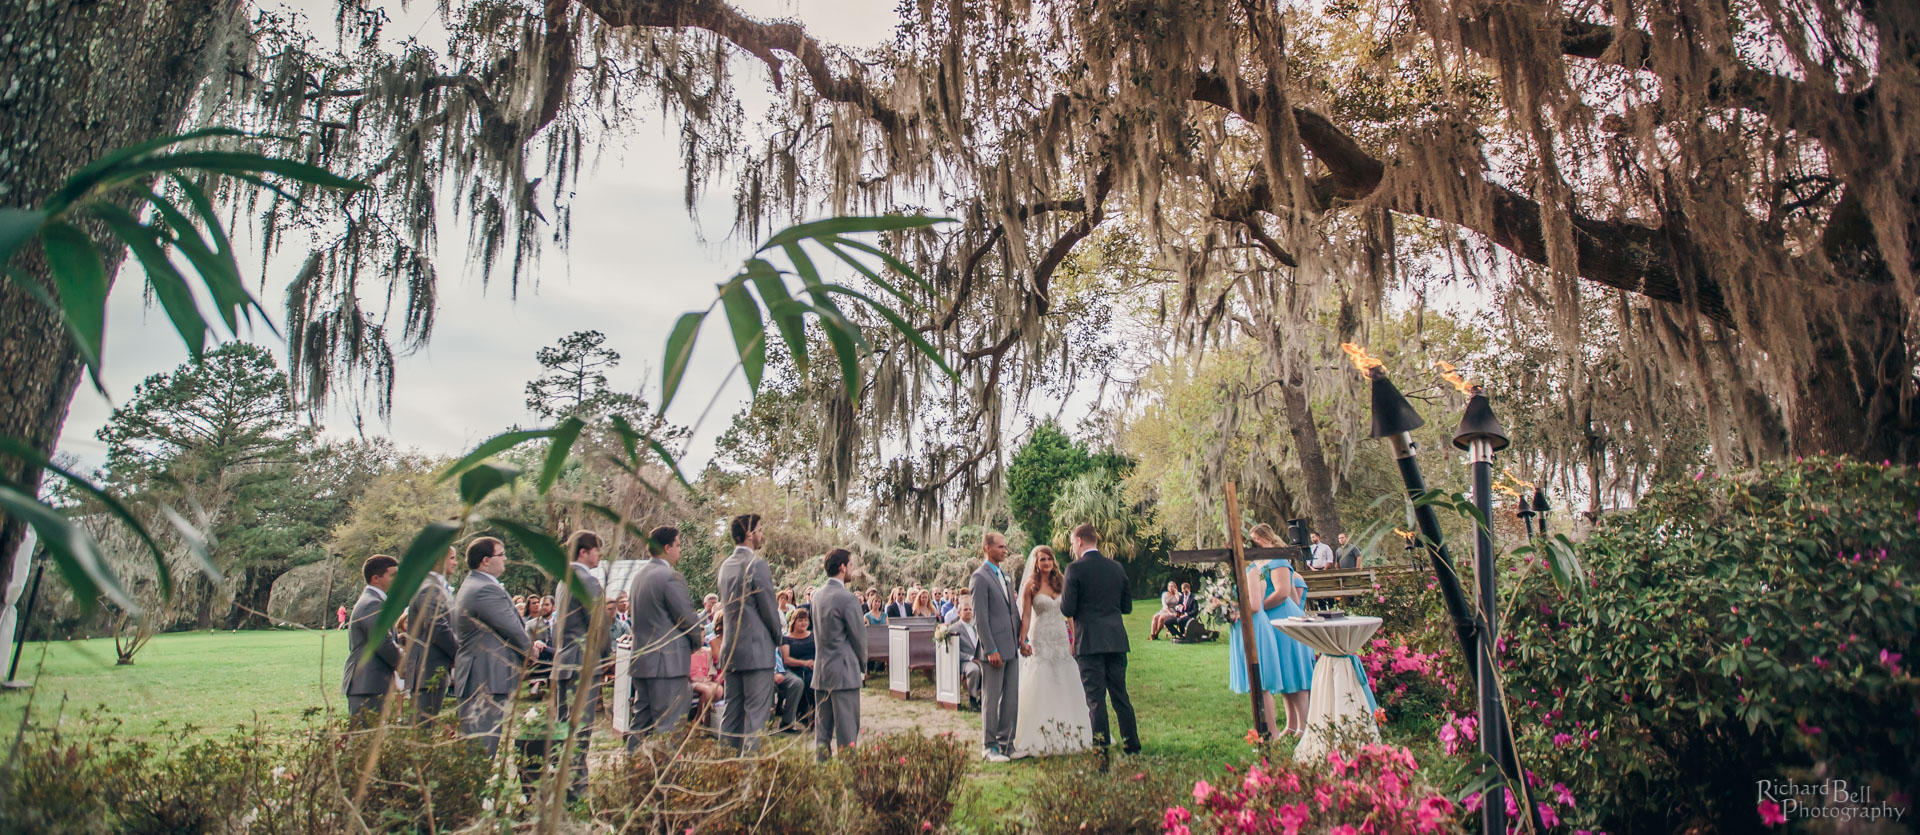 Voorhees Ceremony at Magnolia Plantation